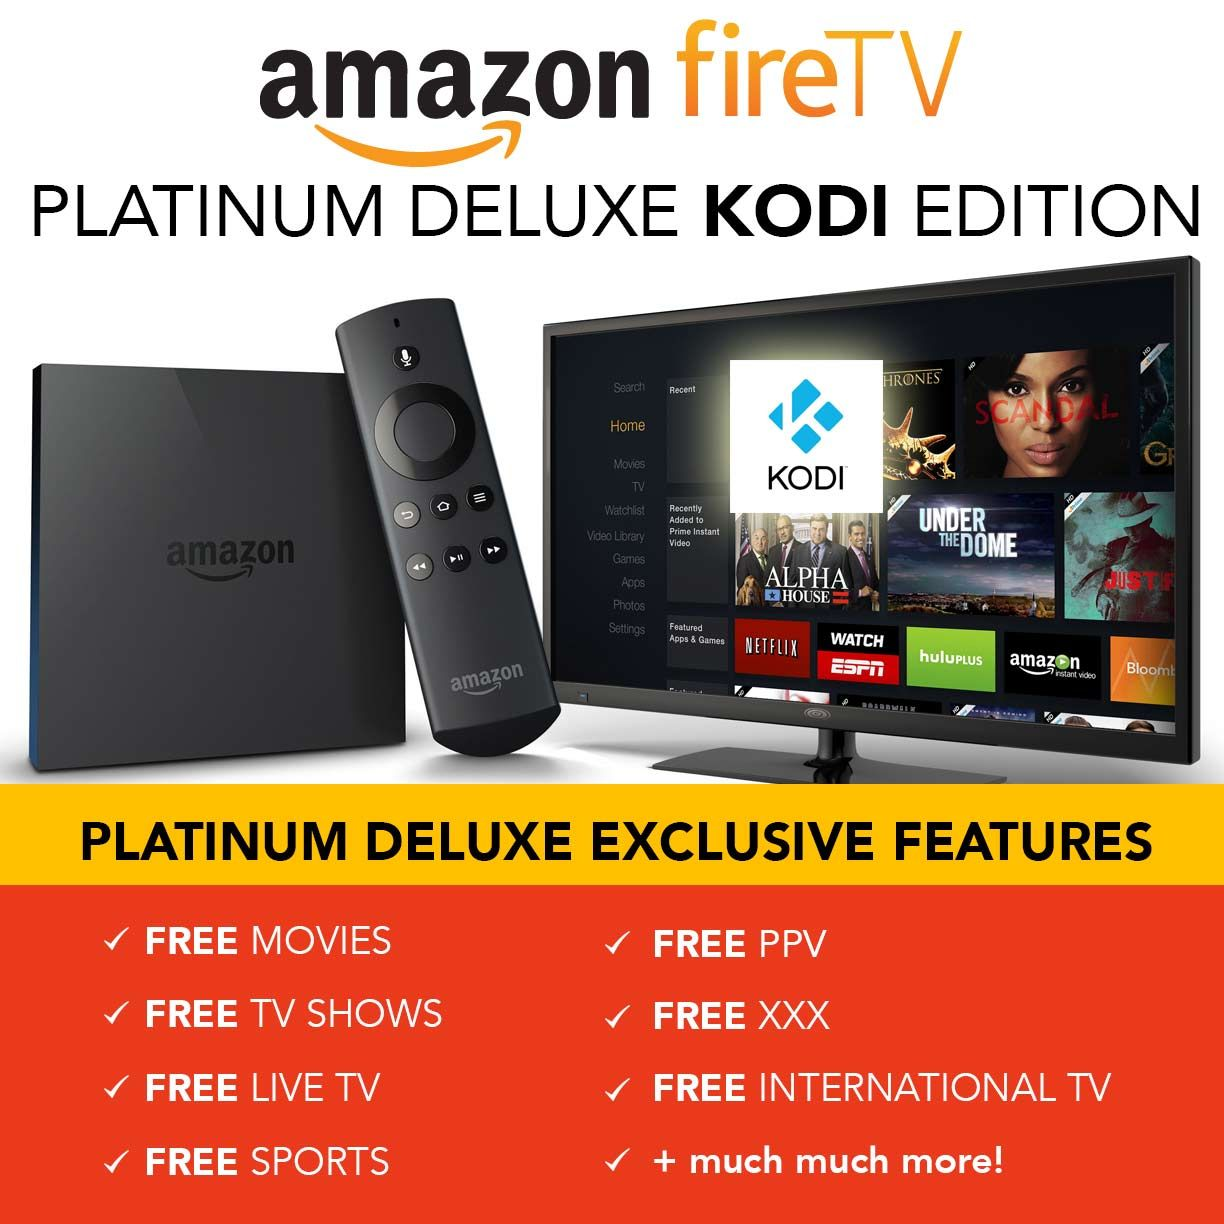 Install Kodi Or Xbmc To Your Amazon Firetv Fast And Easy For Free Cable No Hack Needed That S Right You Read That Correctly No Hack Needed Amazon F Tv Hacks